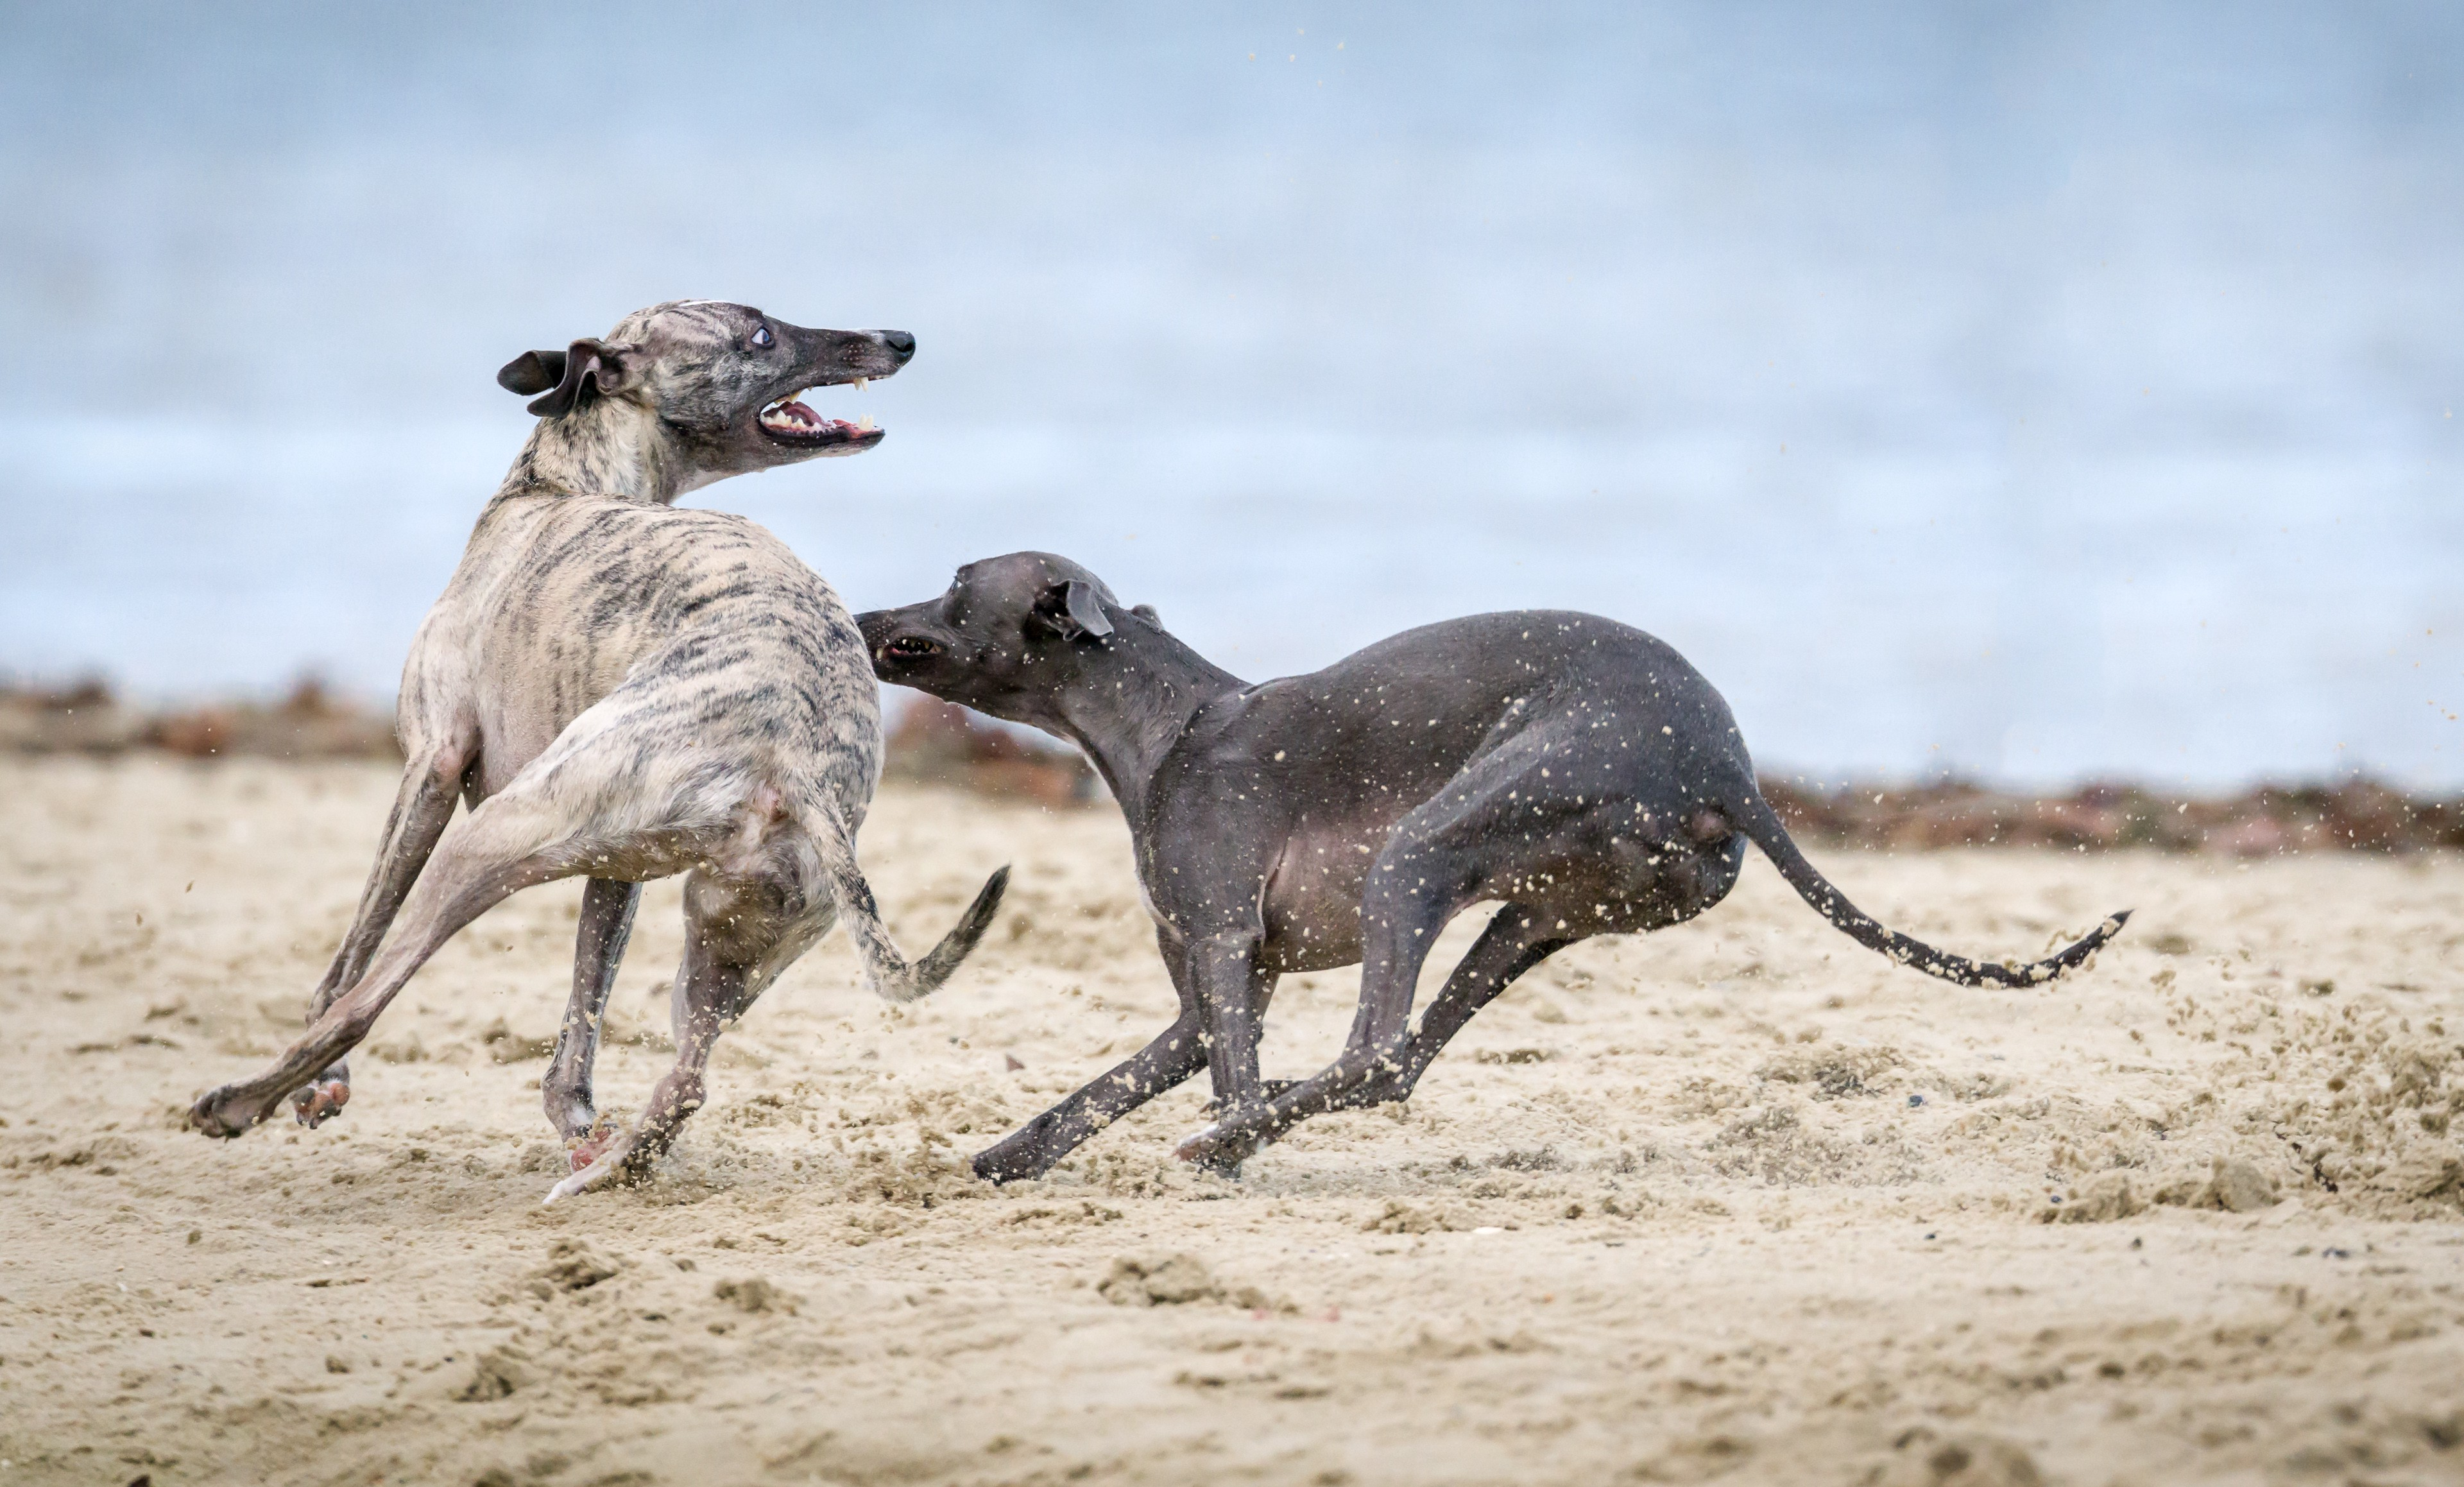 image of two greyhounds chasing on the beech for article by Larry G. Maguire